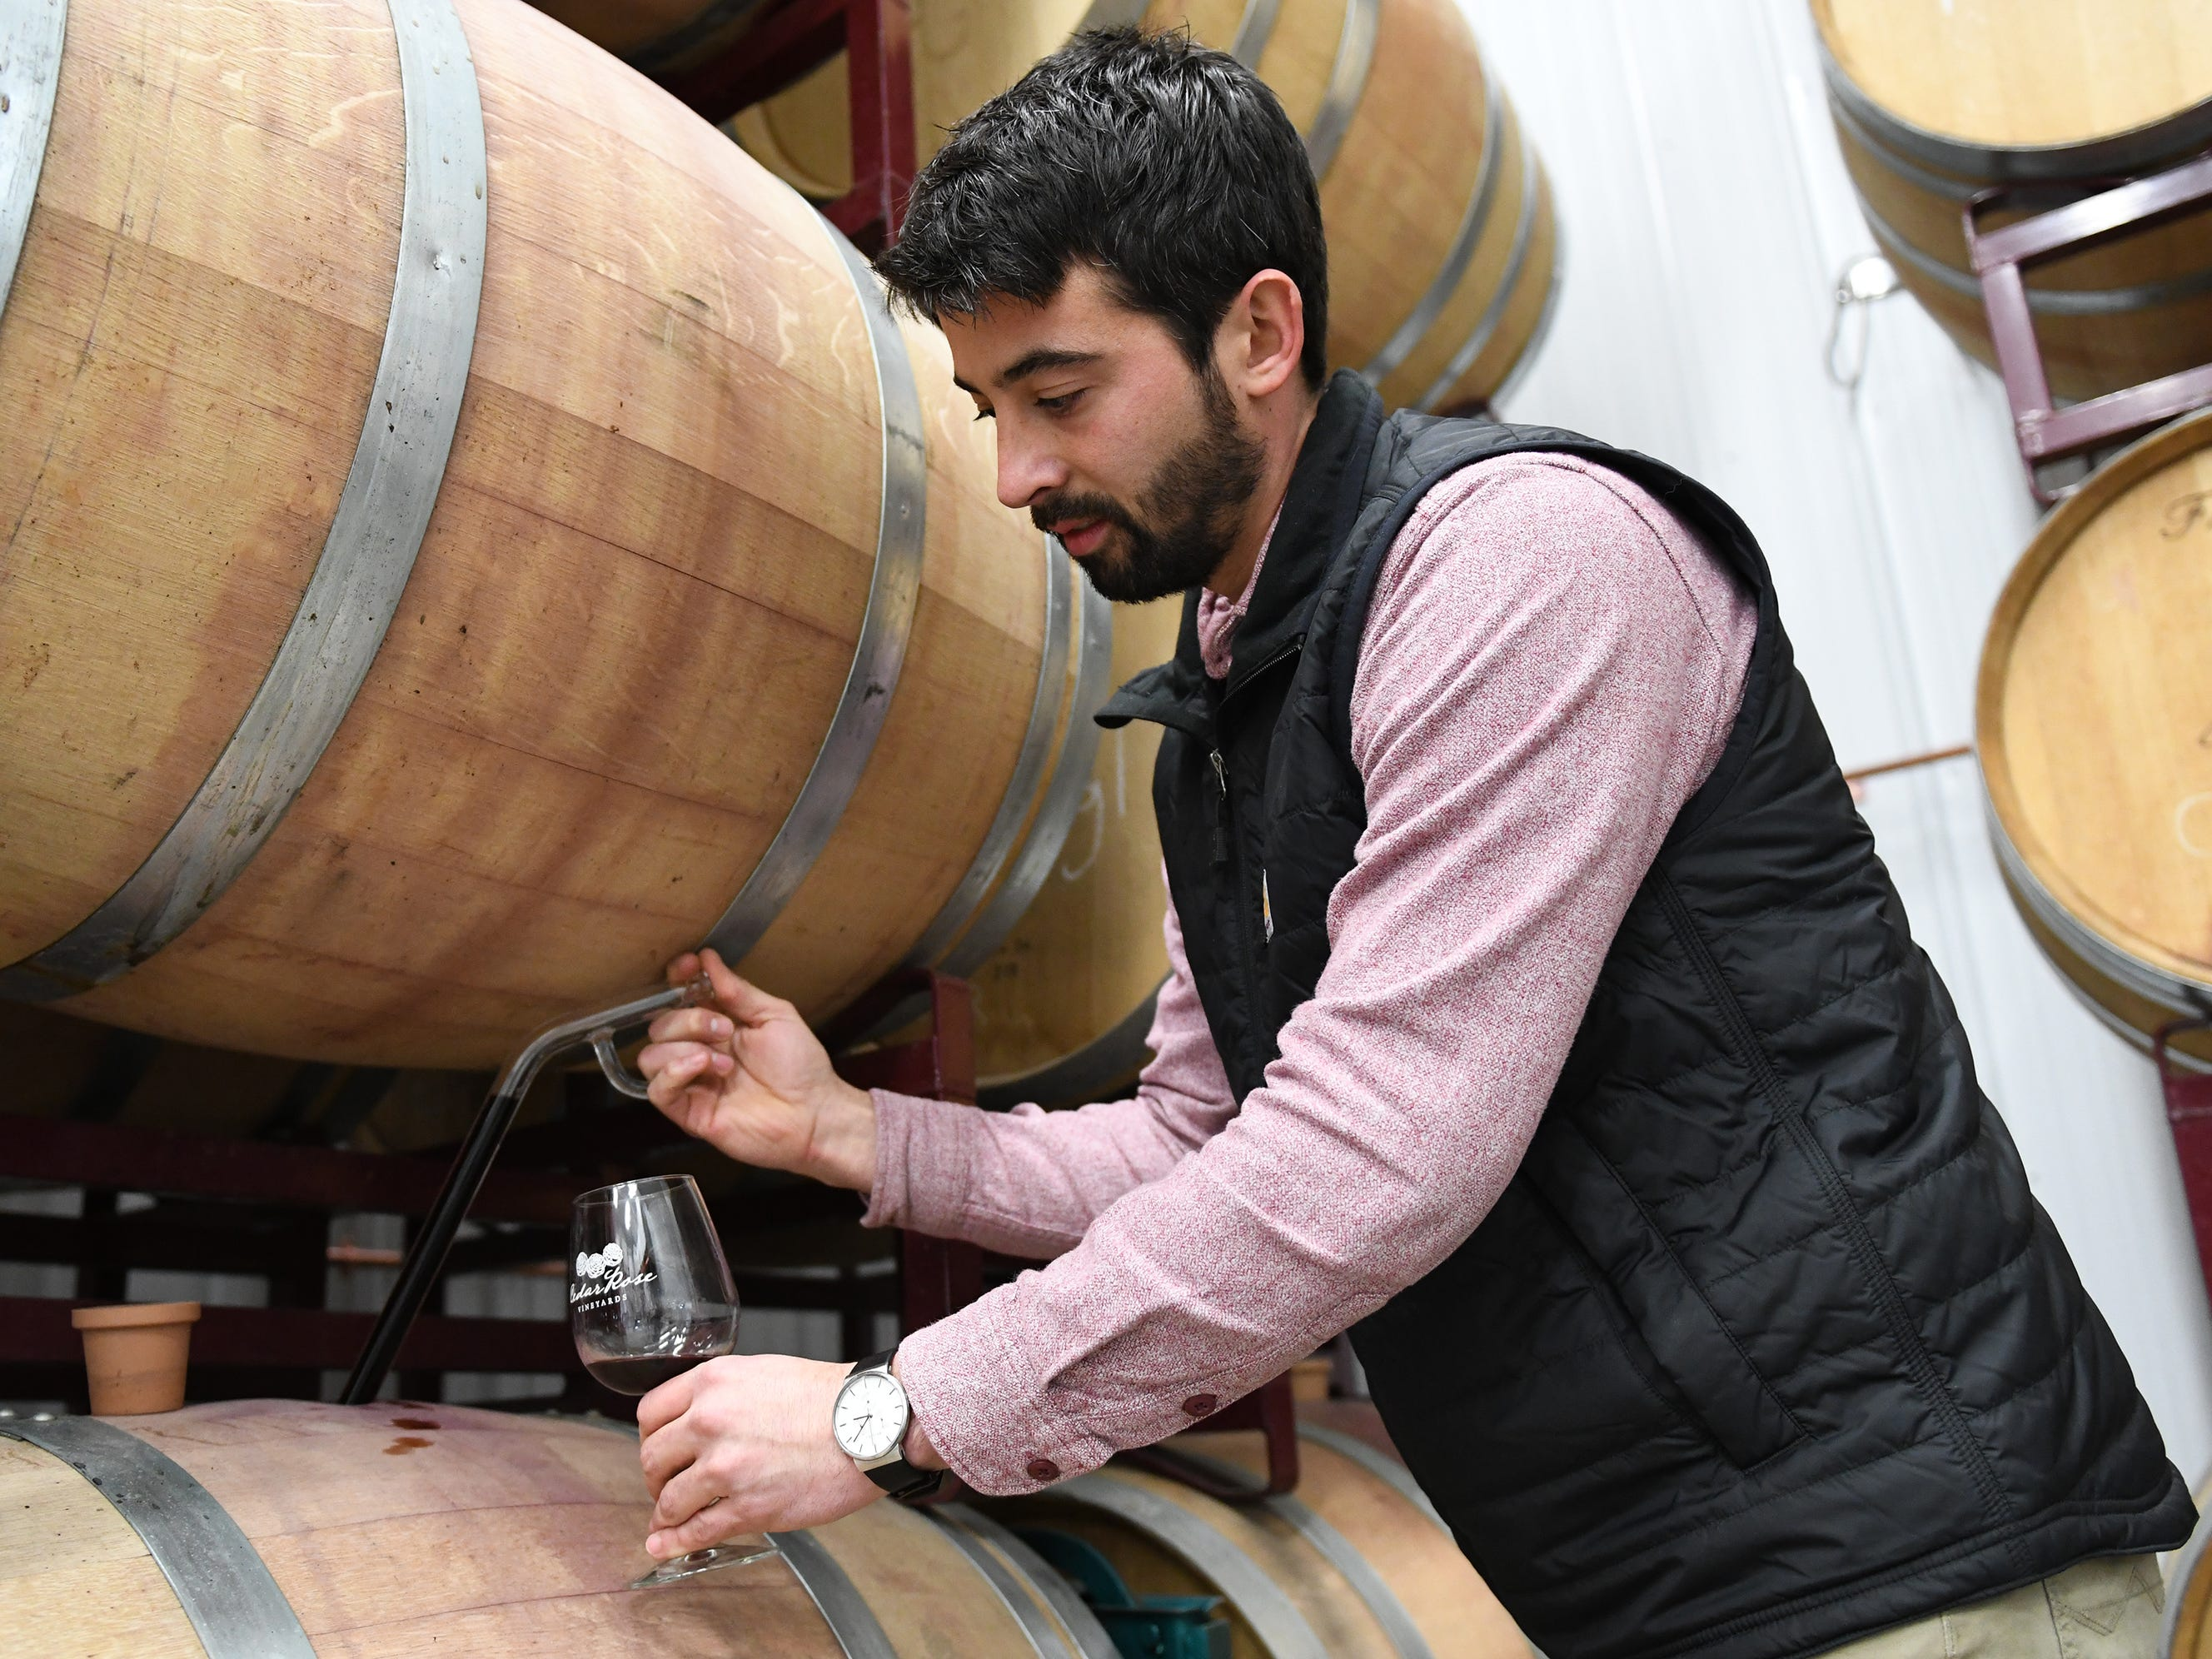 Cedar Rose Vineyards managing partner Steven Becker extracts a barrel sample using a glass wine thief on Tuesday, January 8, 2019.